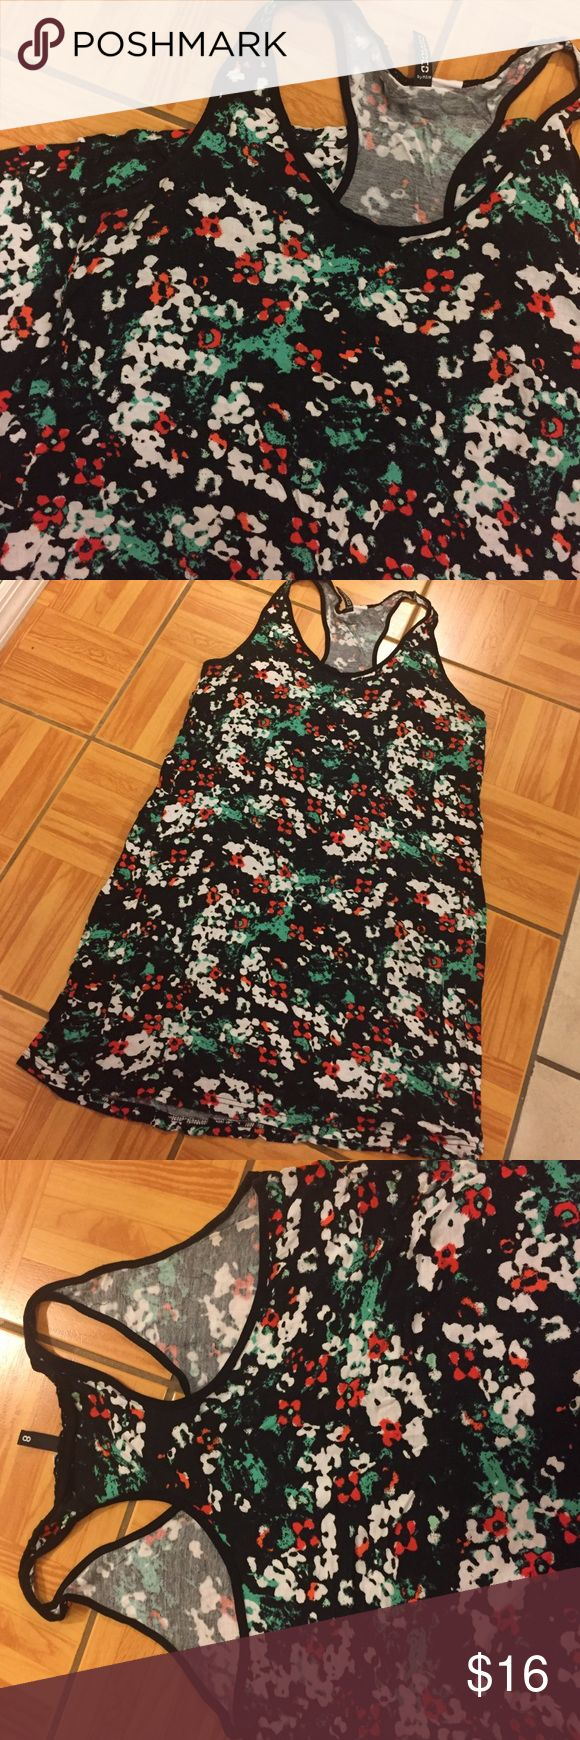 Multi Color Awesome Print Women's Tunic Tank Top Brand Divided purchased from H&M. •Overall Color: Black •Print Color: Red/ White/ Green •GENTLY worn •100% Rayon •Racer Back Style  👾NO TRADES 👾OFFERS WELCOMED! 👾BUNDLE TO SAVE  👾FEEL FREE TO ASK ANY QUESTIONS Divided Tops Tunics